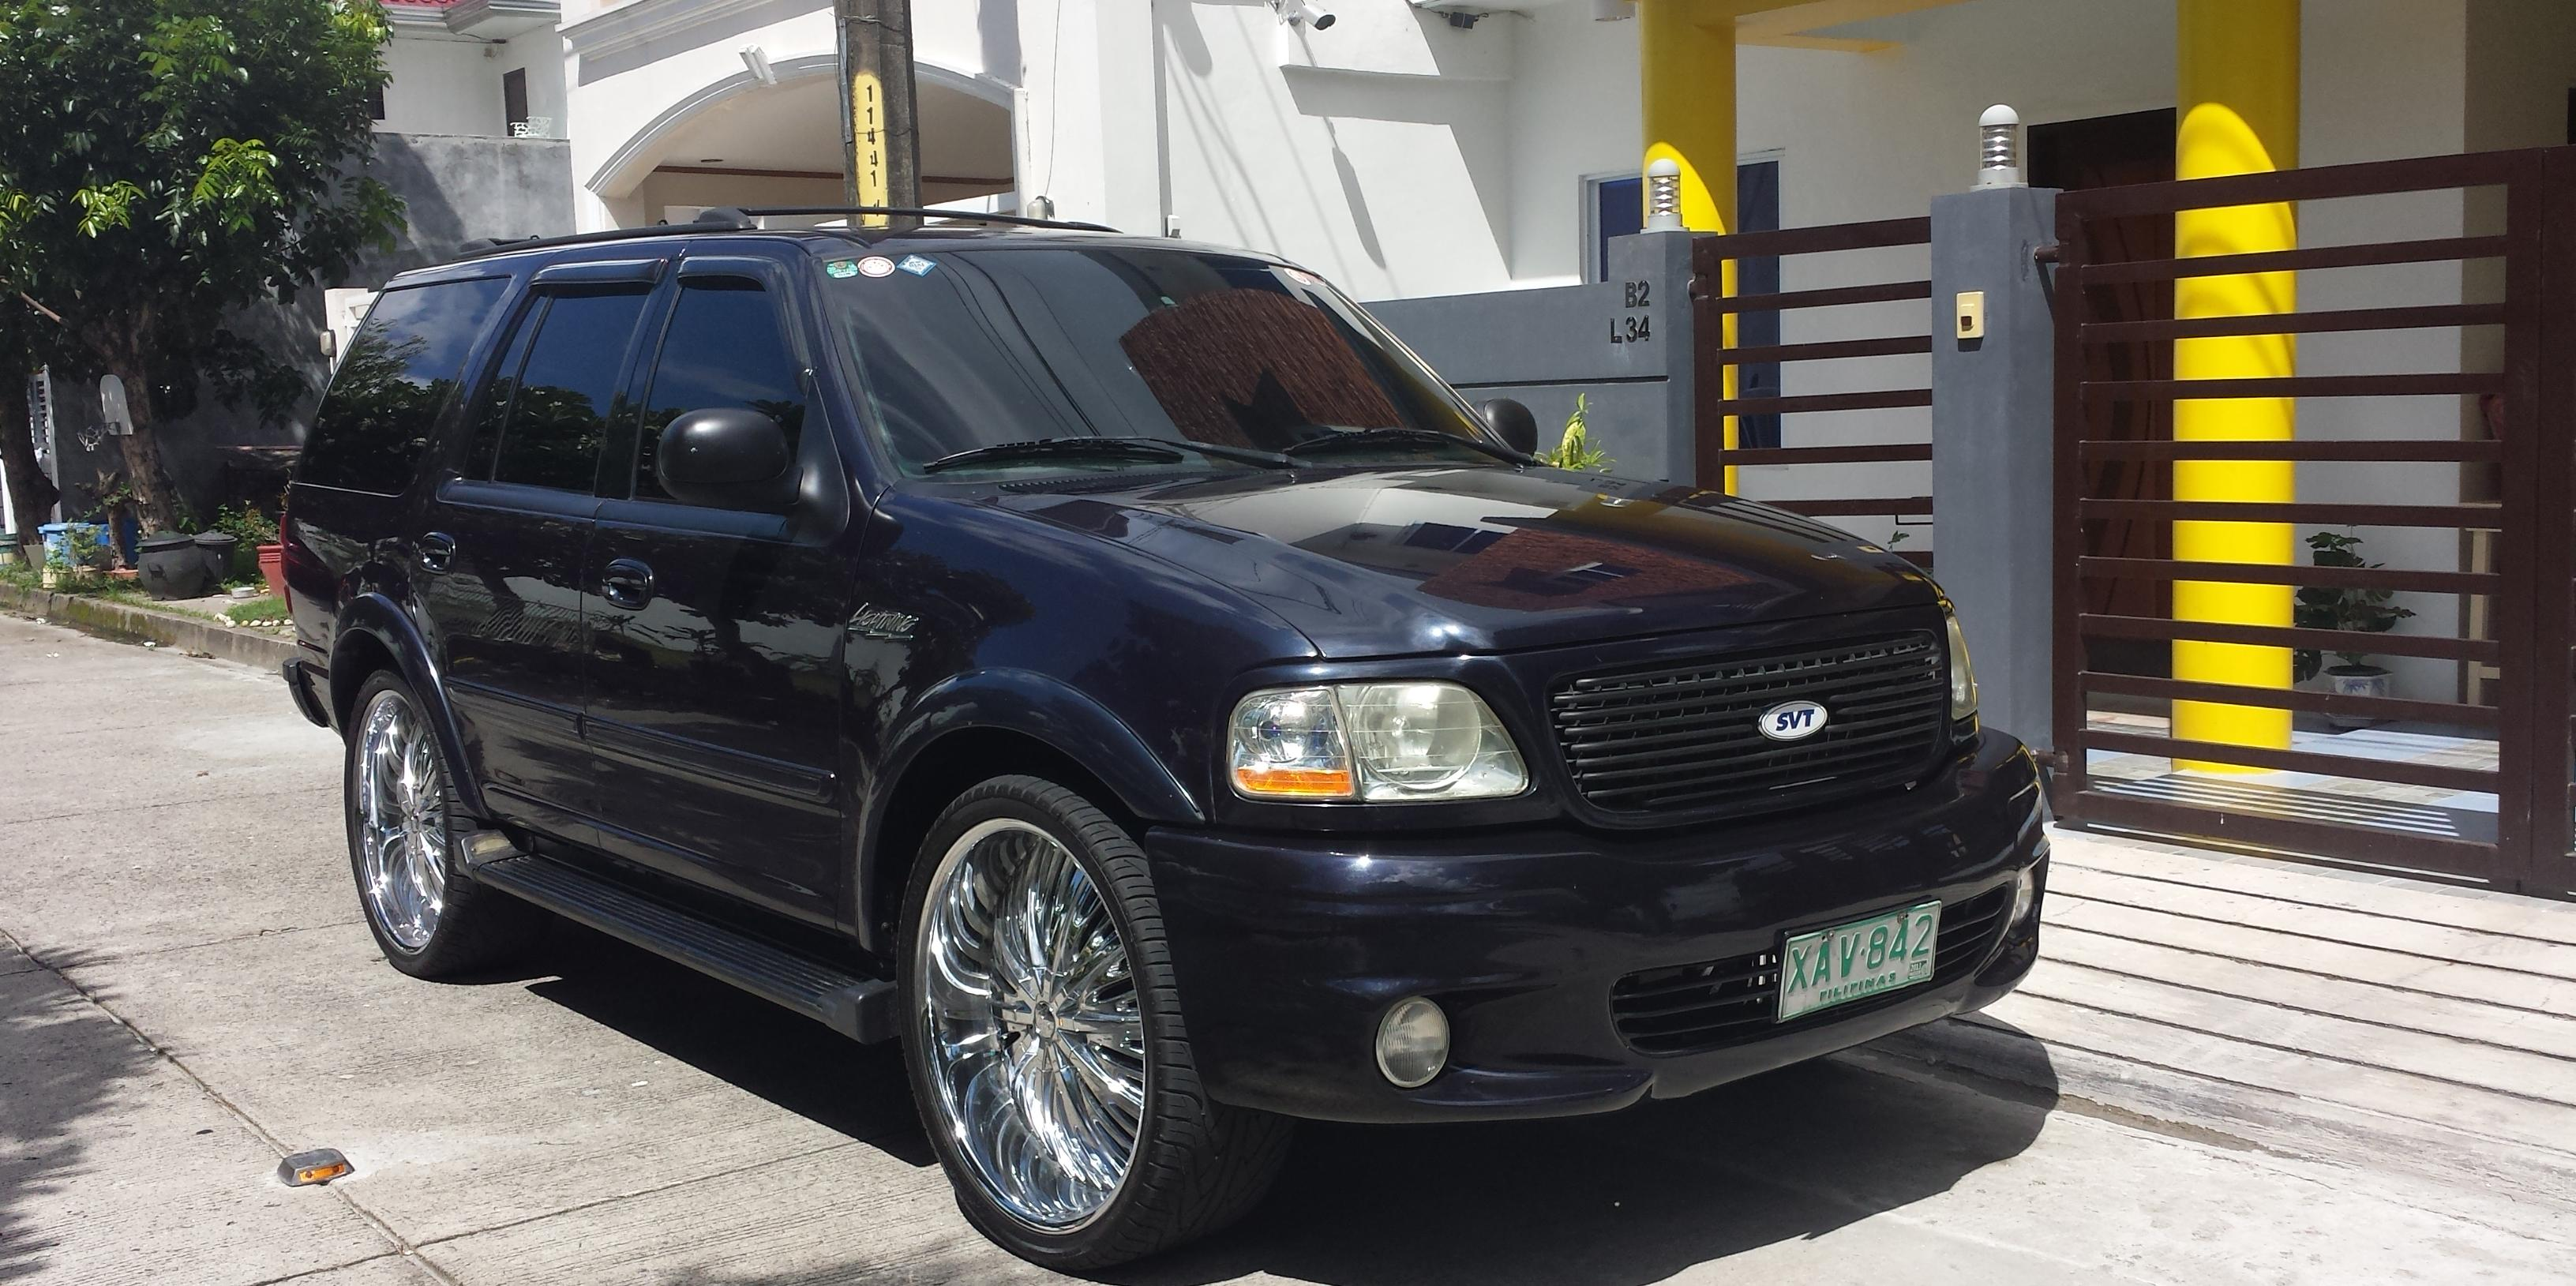 vinz777 2002 Ford Expedition